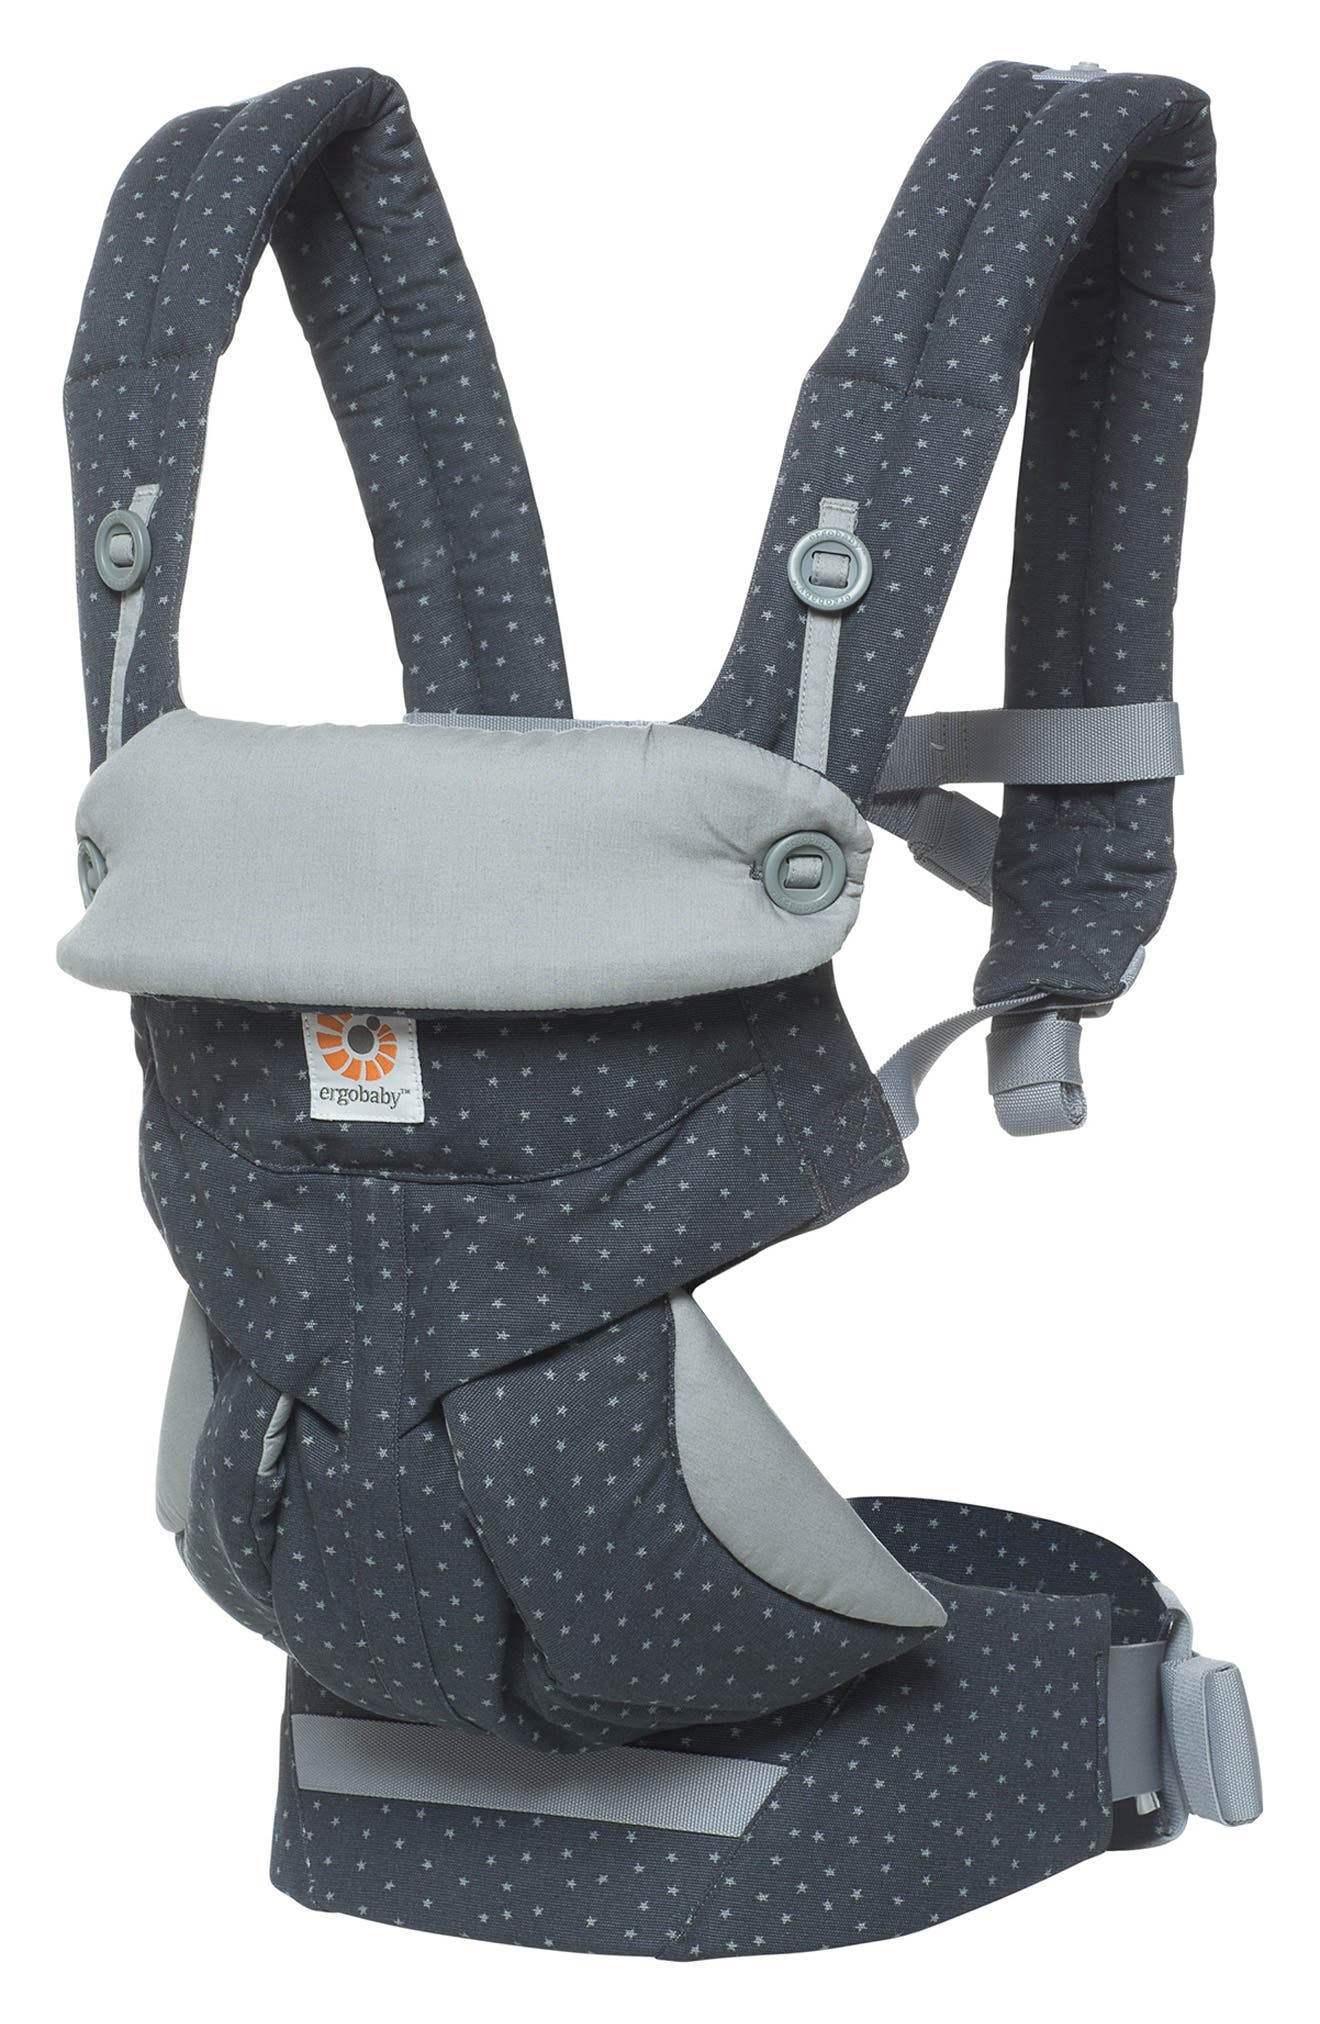 '360' Baby Carrier,                             Main thumbnail 1, color,                             GREY WITH STARS